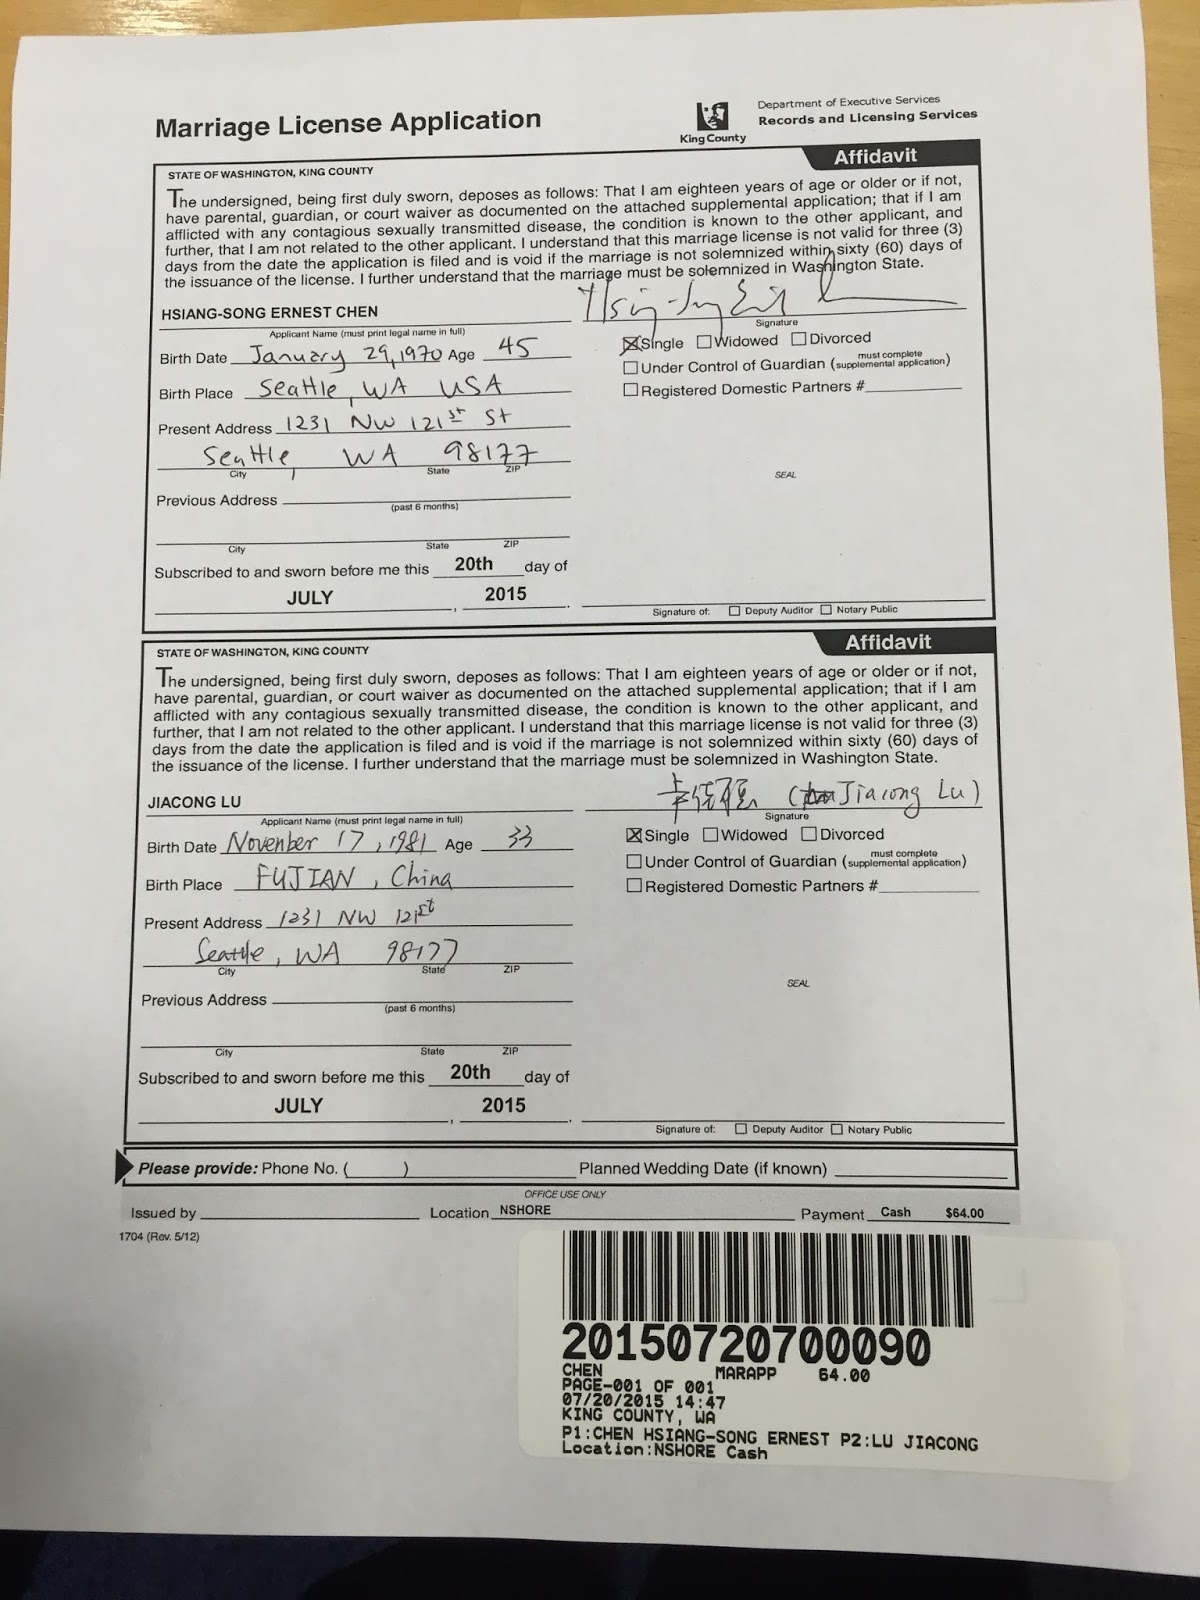 The Life Of H Ernest Chen Marriage License Application And Certificate